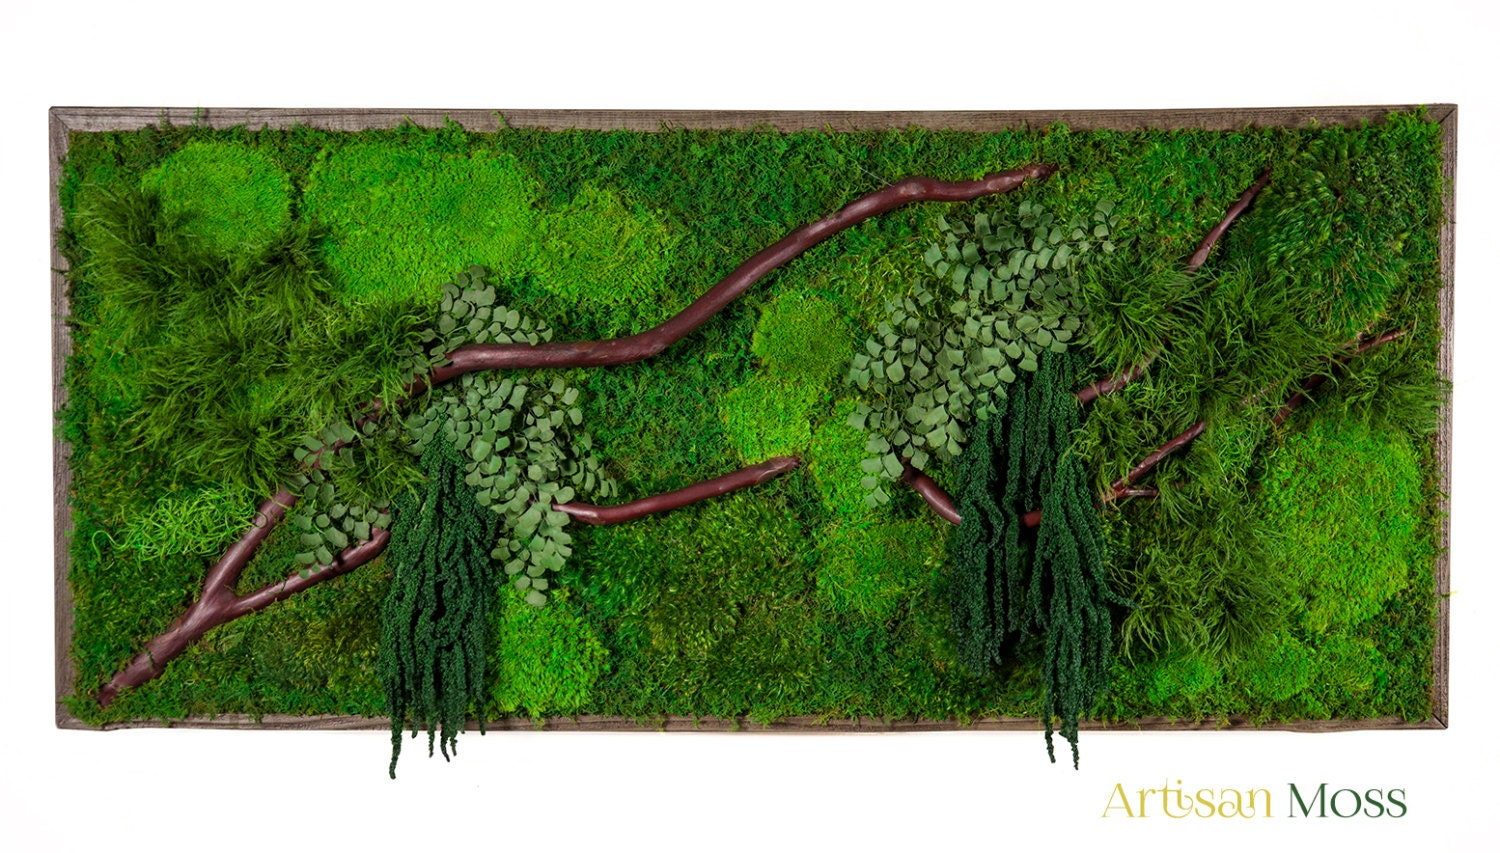 40 x 18 artisan moss real preserved plants in. Black Bedroom Furniture Sets. Home Design Ideas